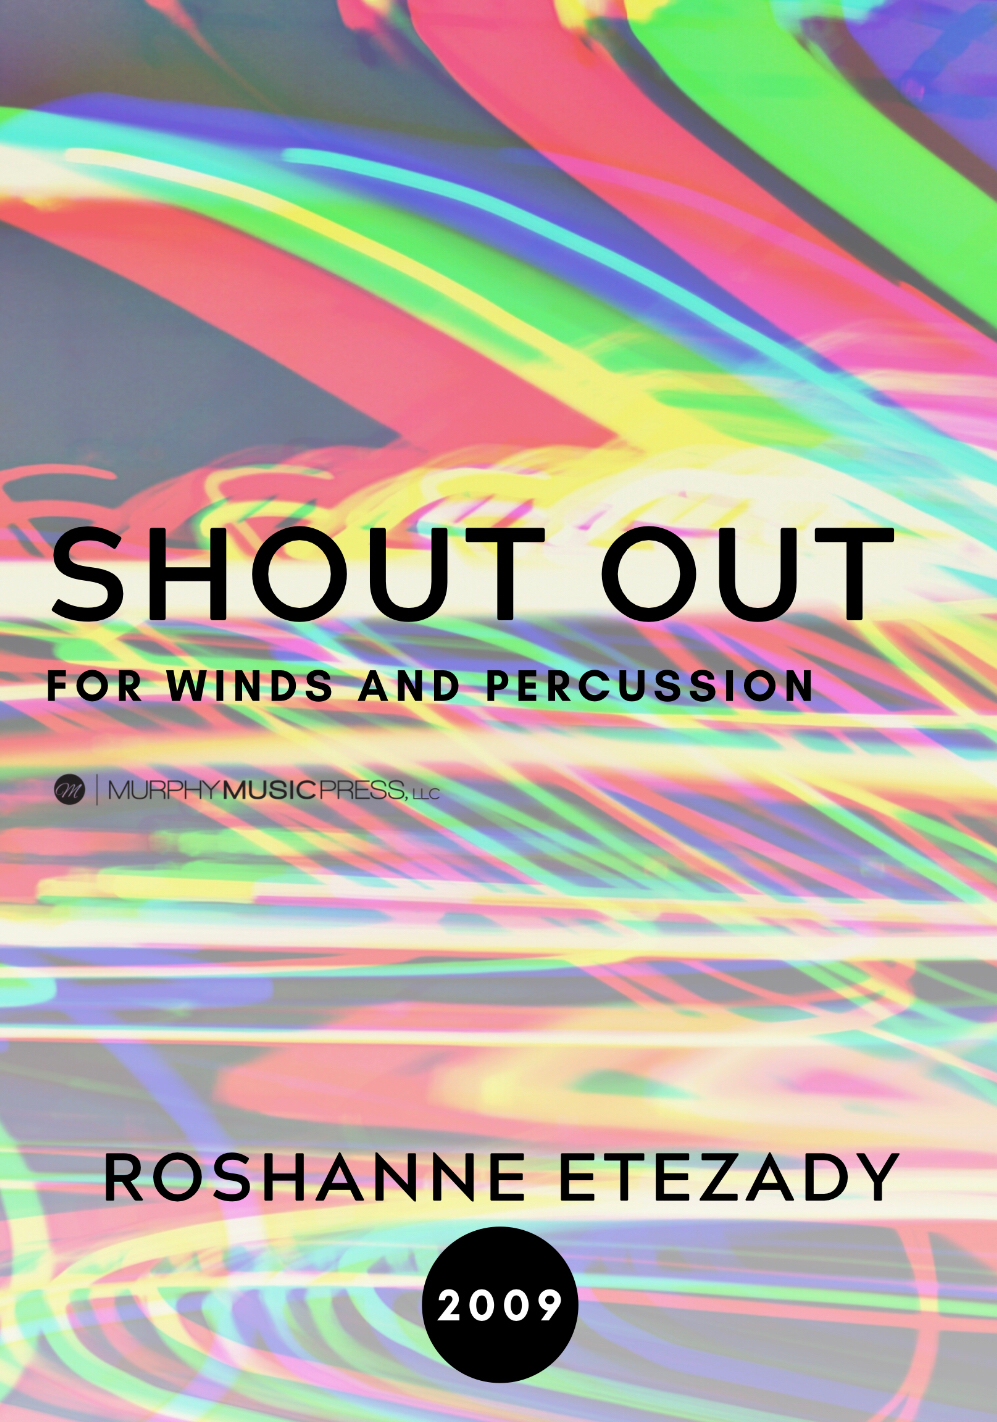 Shoutout by Roshanne Etezady